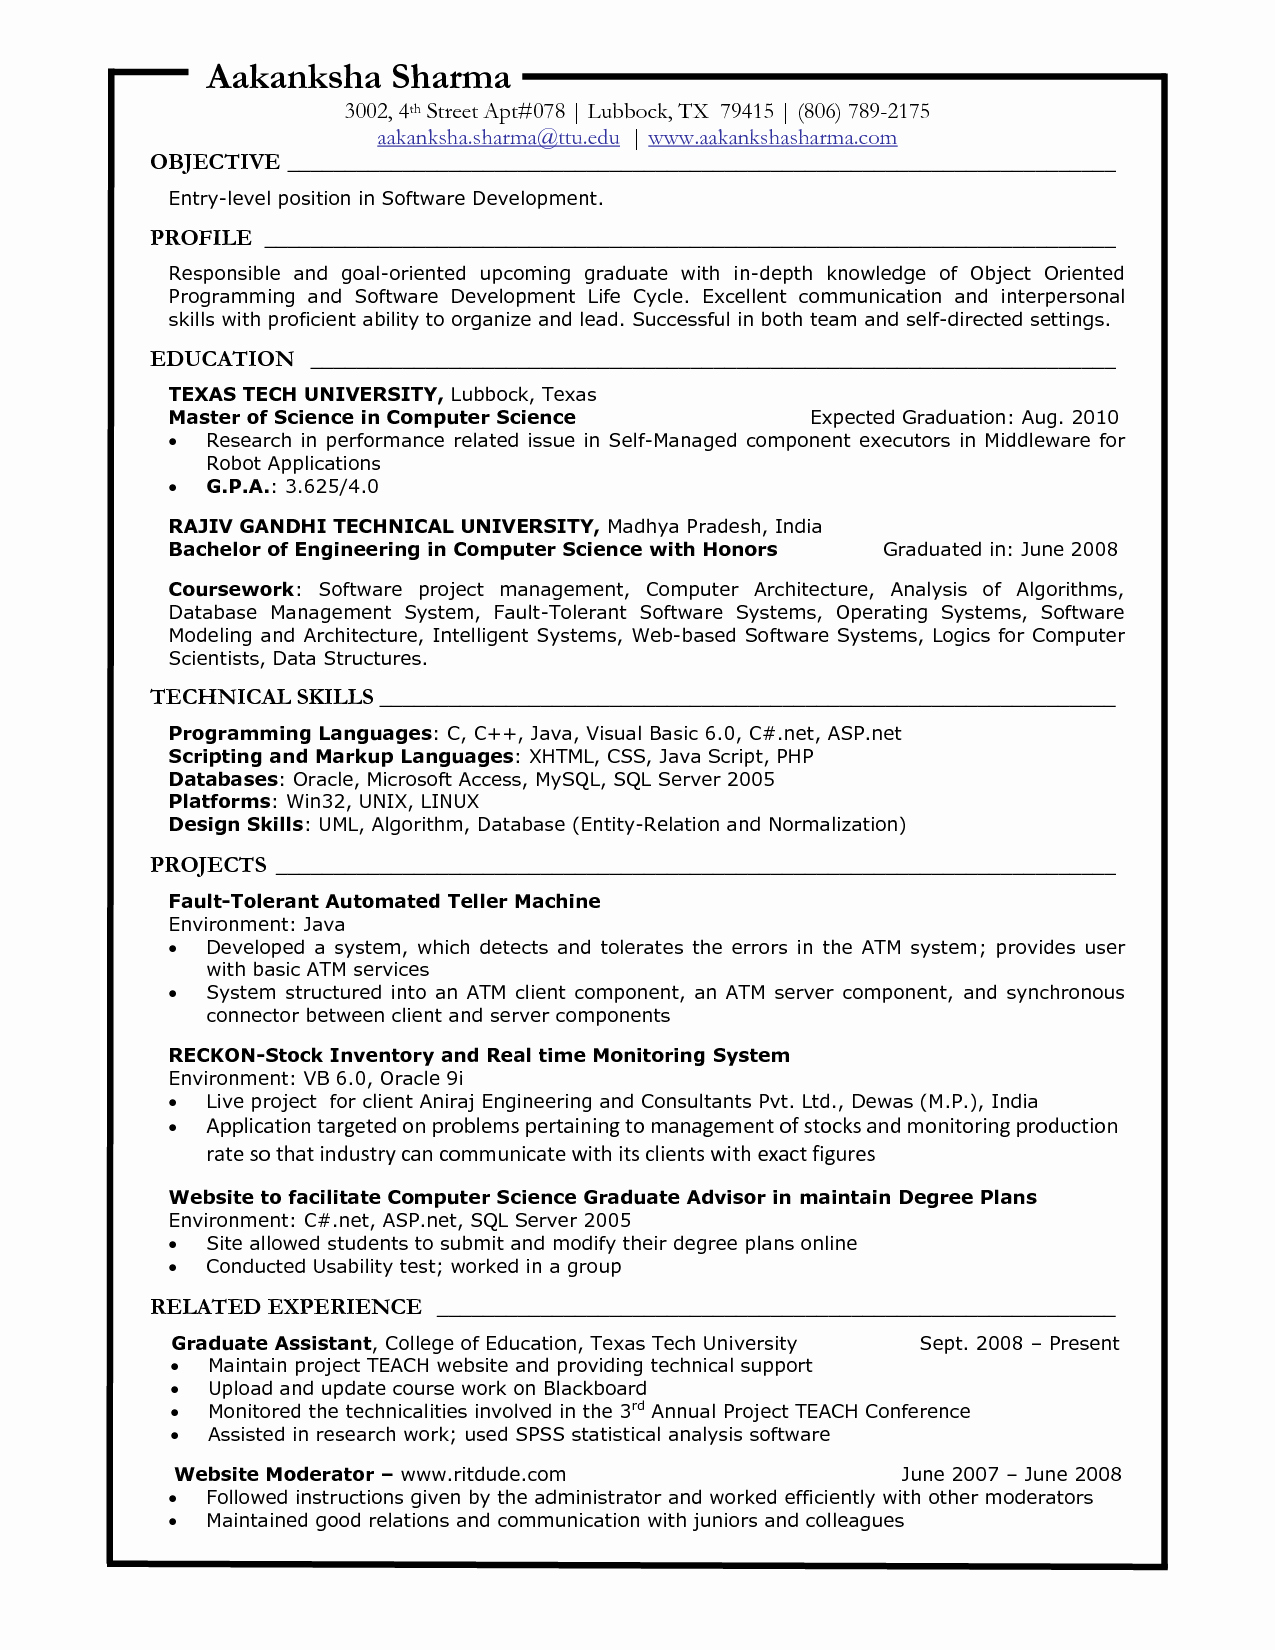 Puter Science Entry Level Resume Resume Ideas